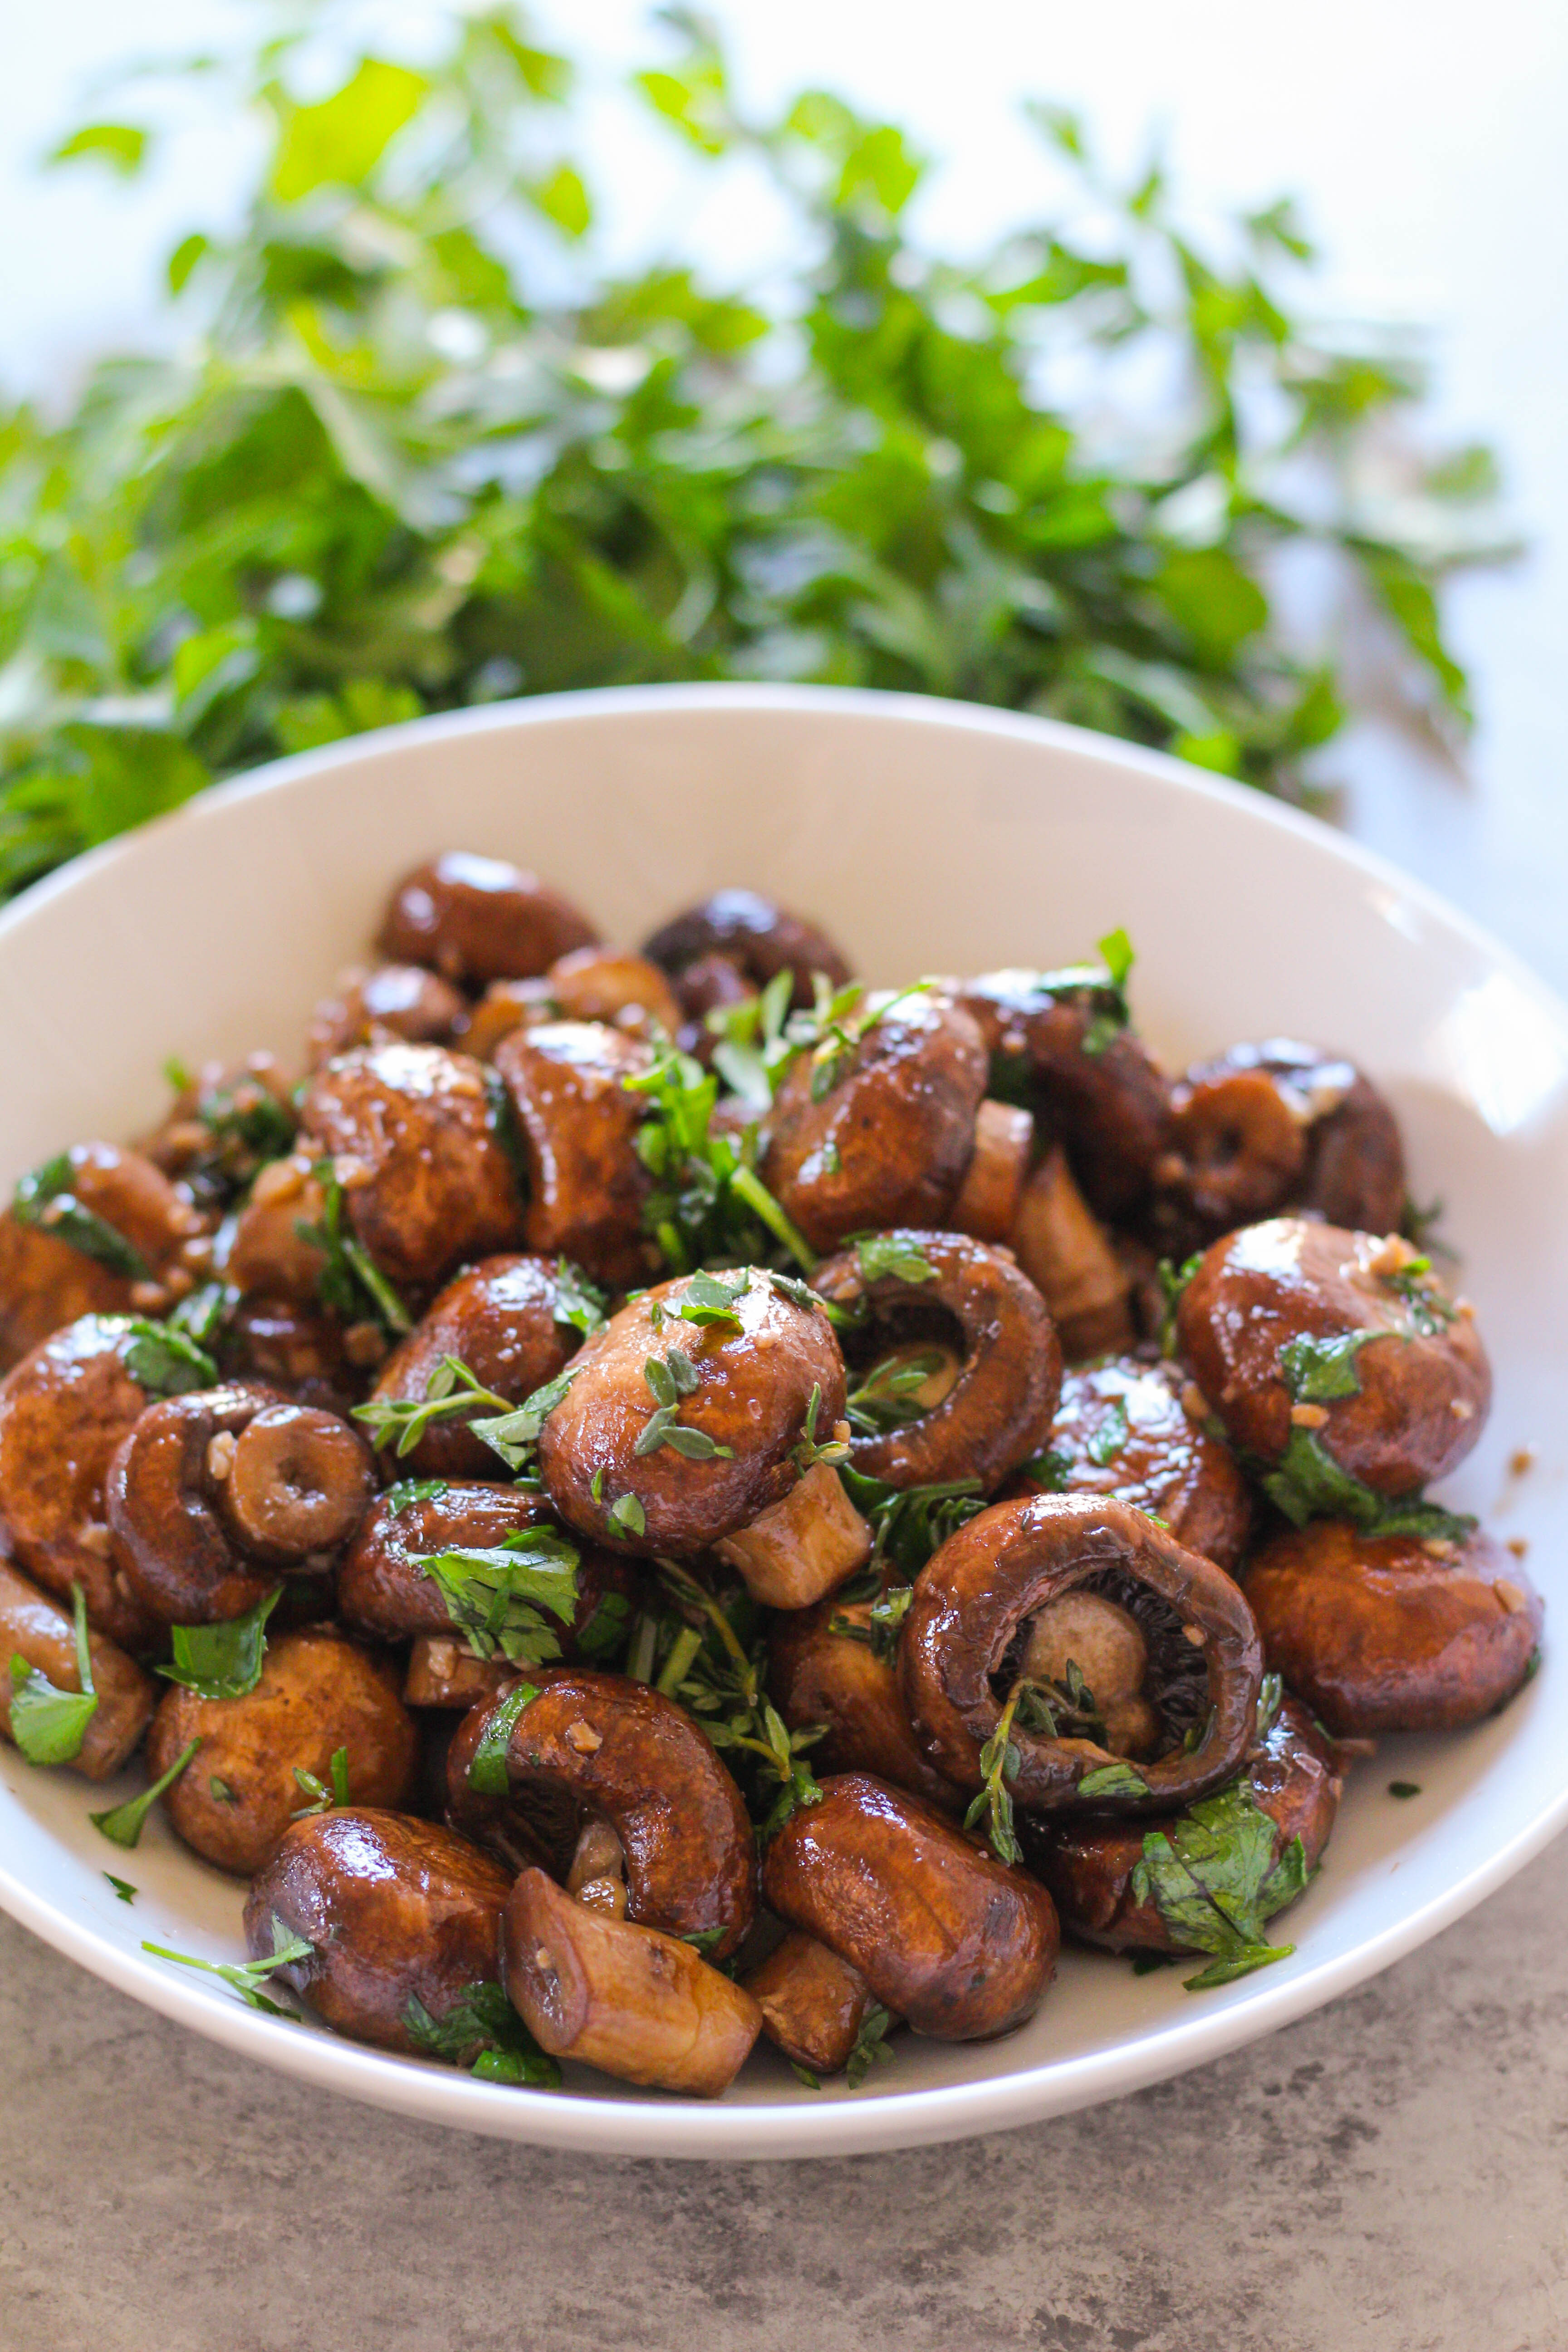 The perfect Spring side dish: savory cremini sauteed mushrooms in buttery ghee and tossed with fresh herbs.